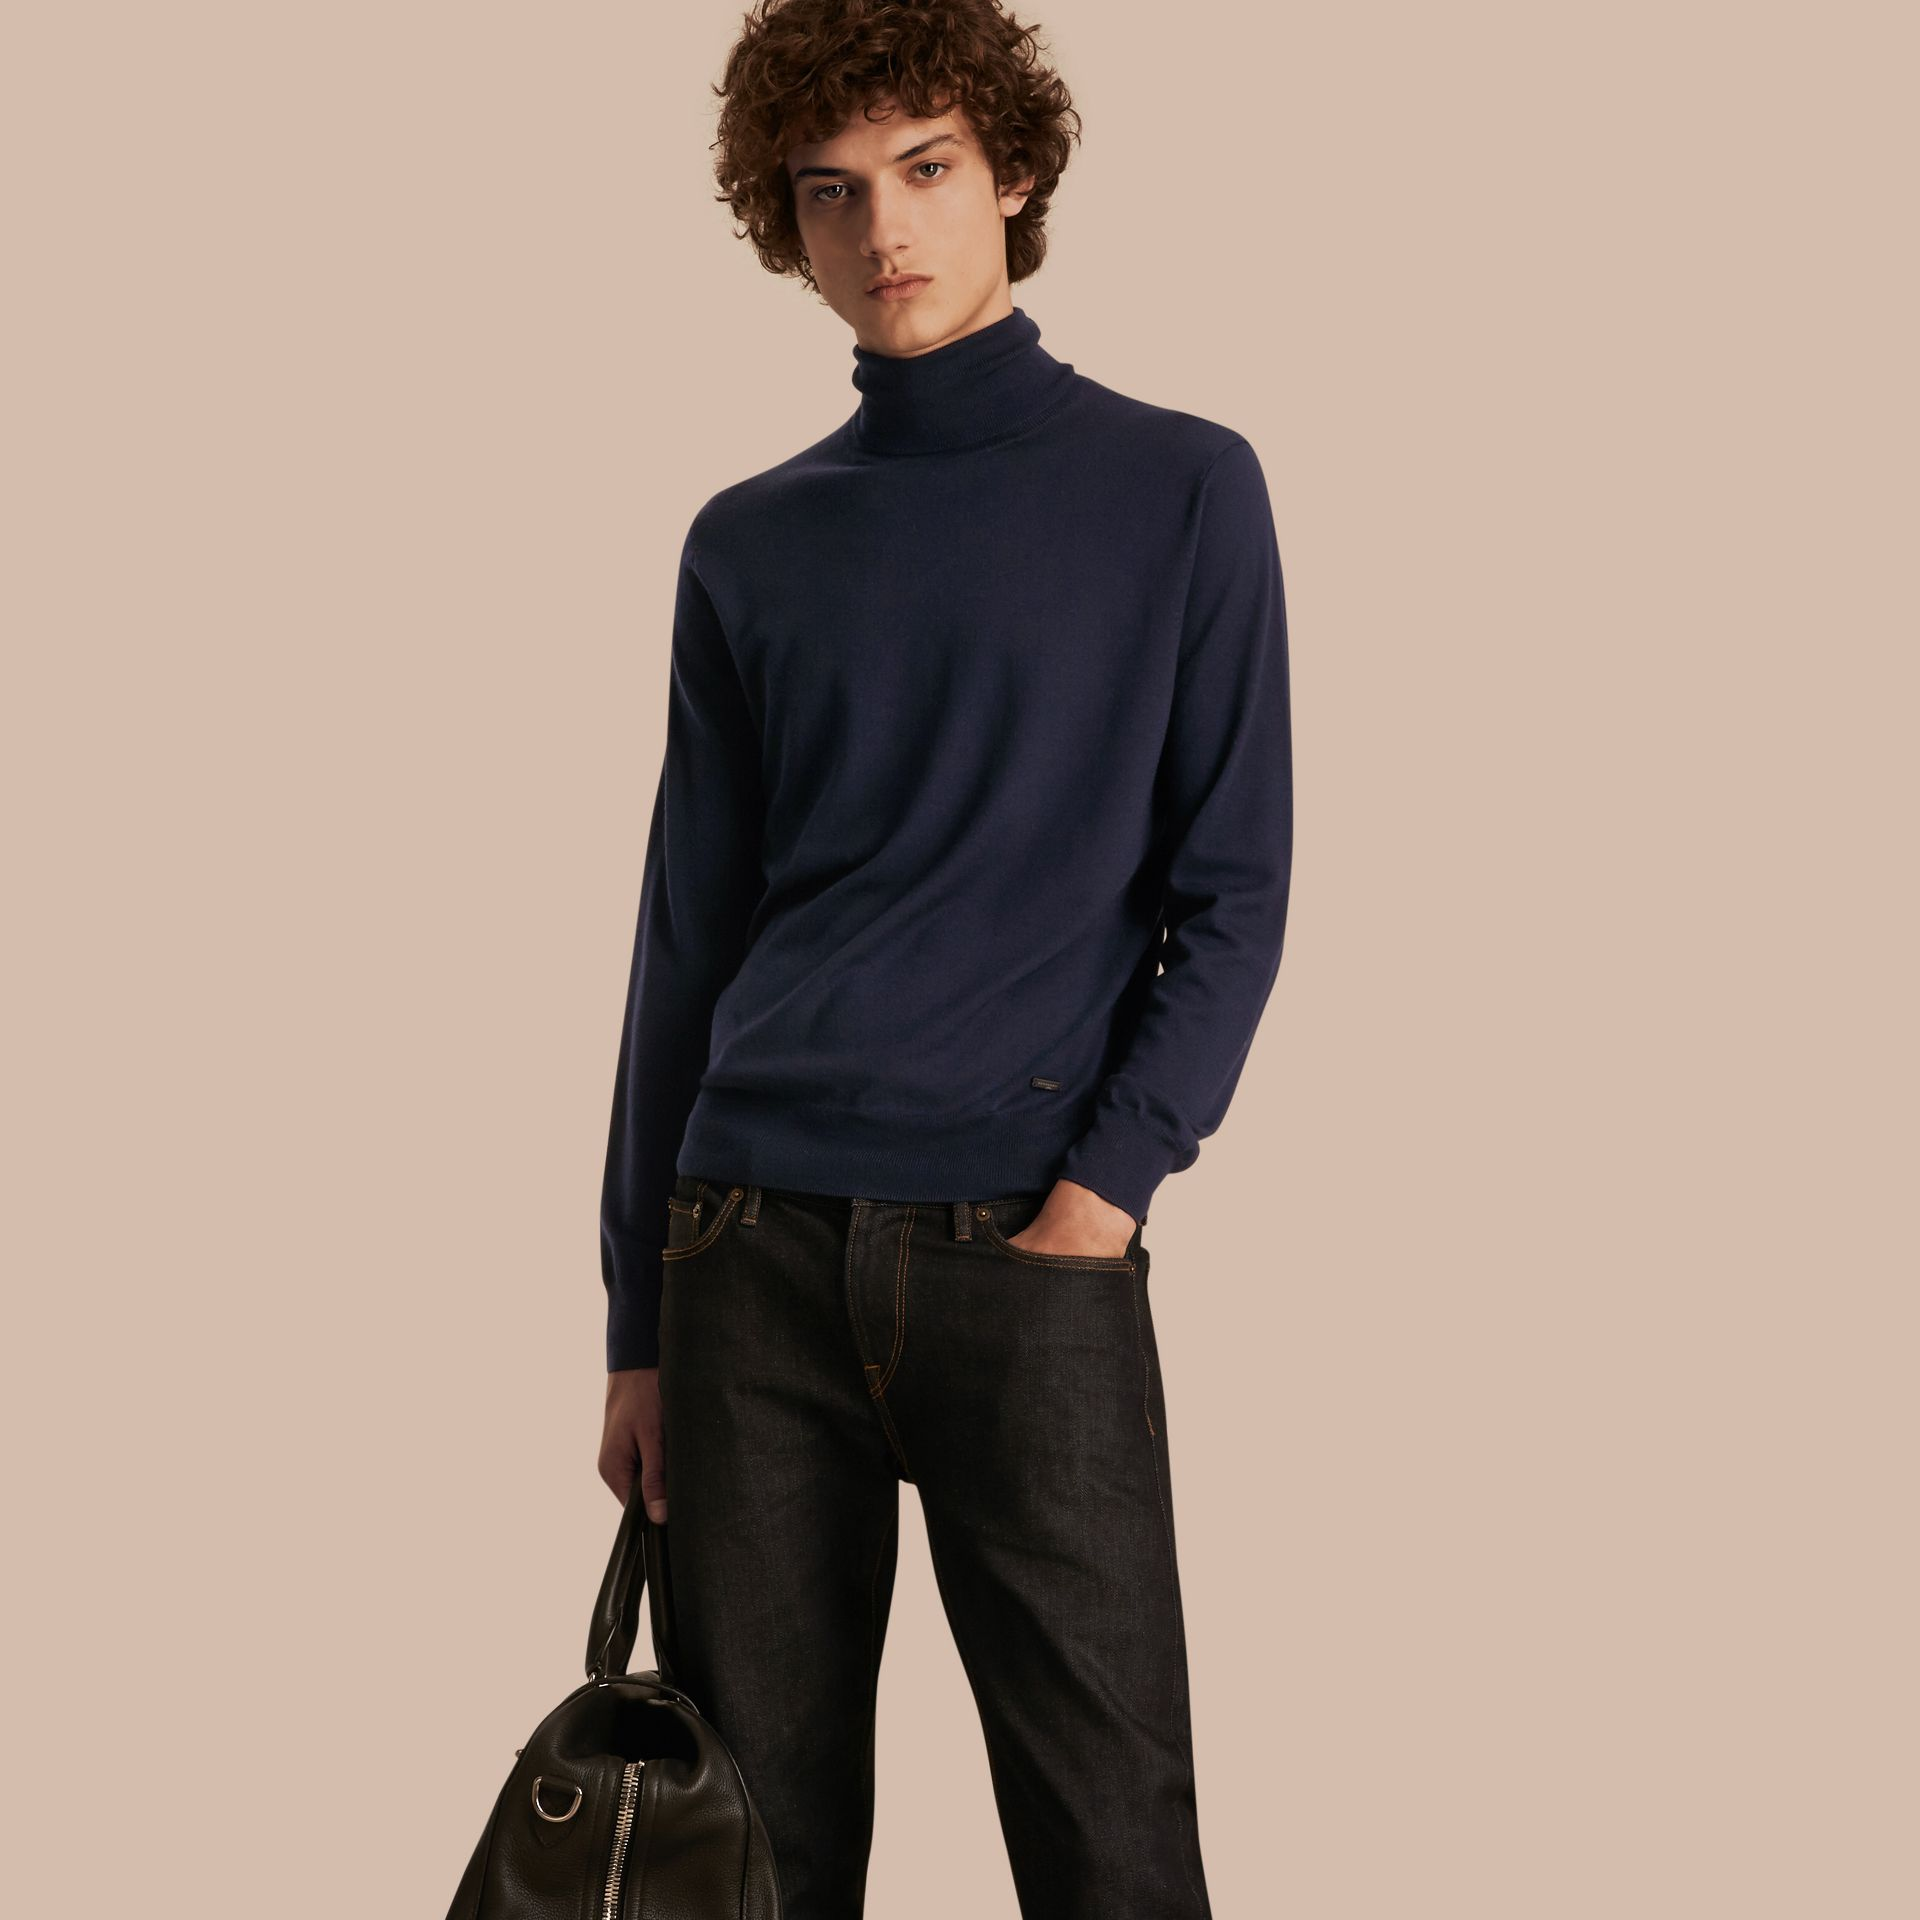 Navy Merino Wool Roll-neck Sweater Navy - gallery image 1